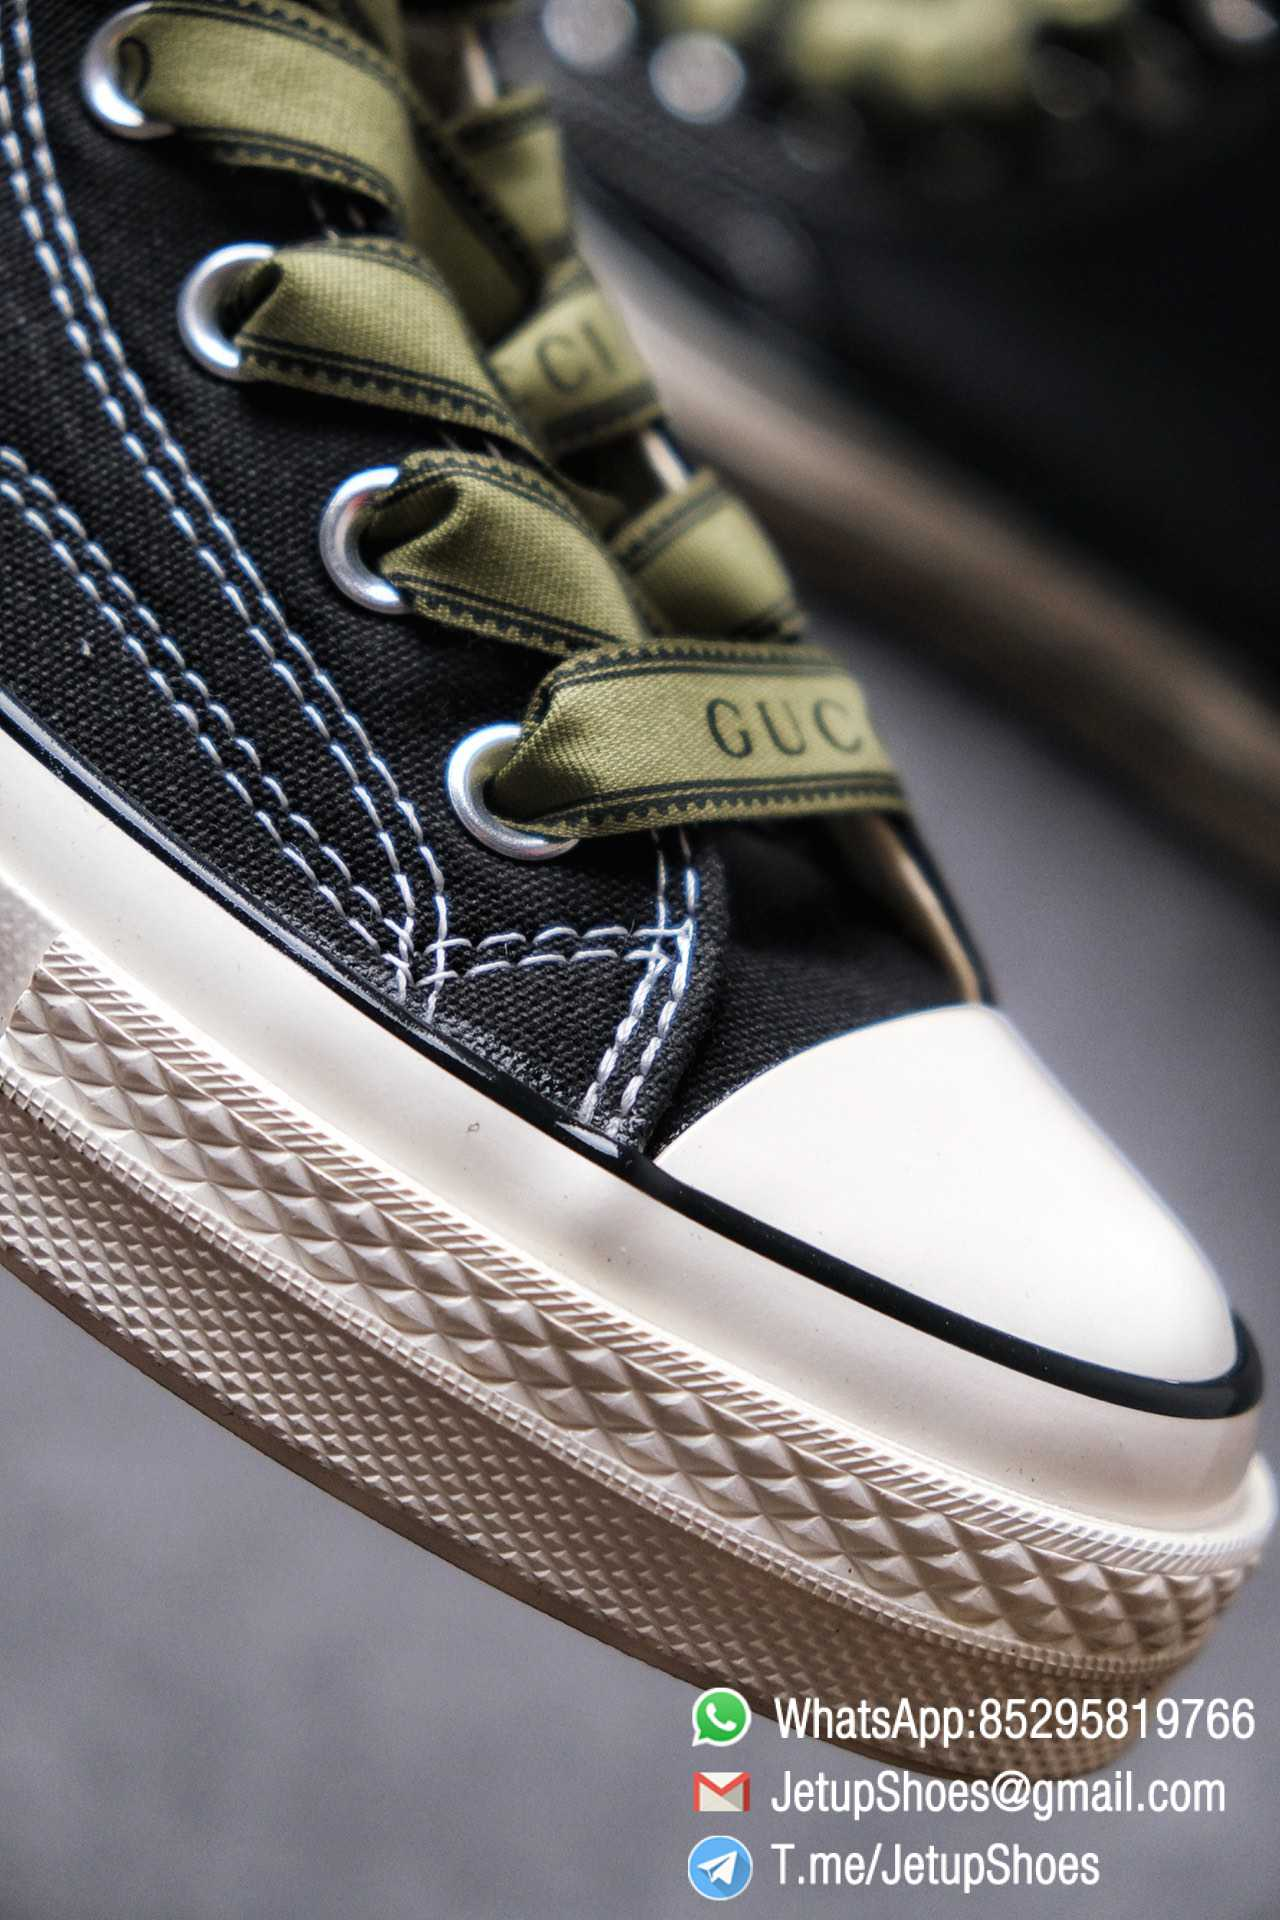 Womens Converse x Gucci Tennis 1970S High Top Sneaker Vintage Inspired Green Shoelace Black 2021 Spring 03